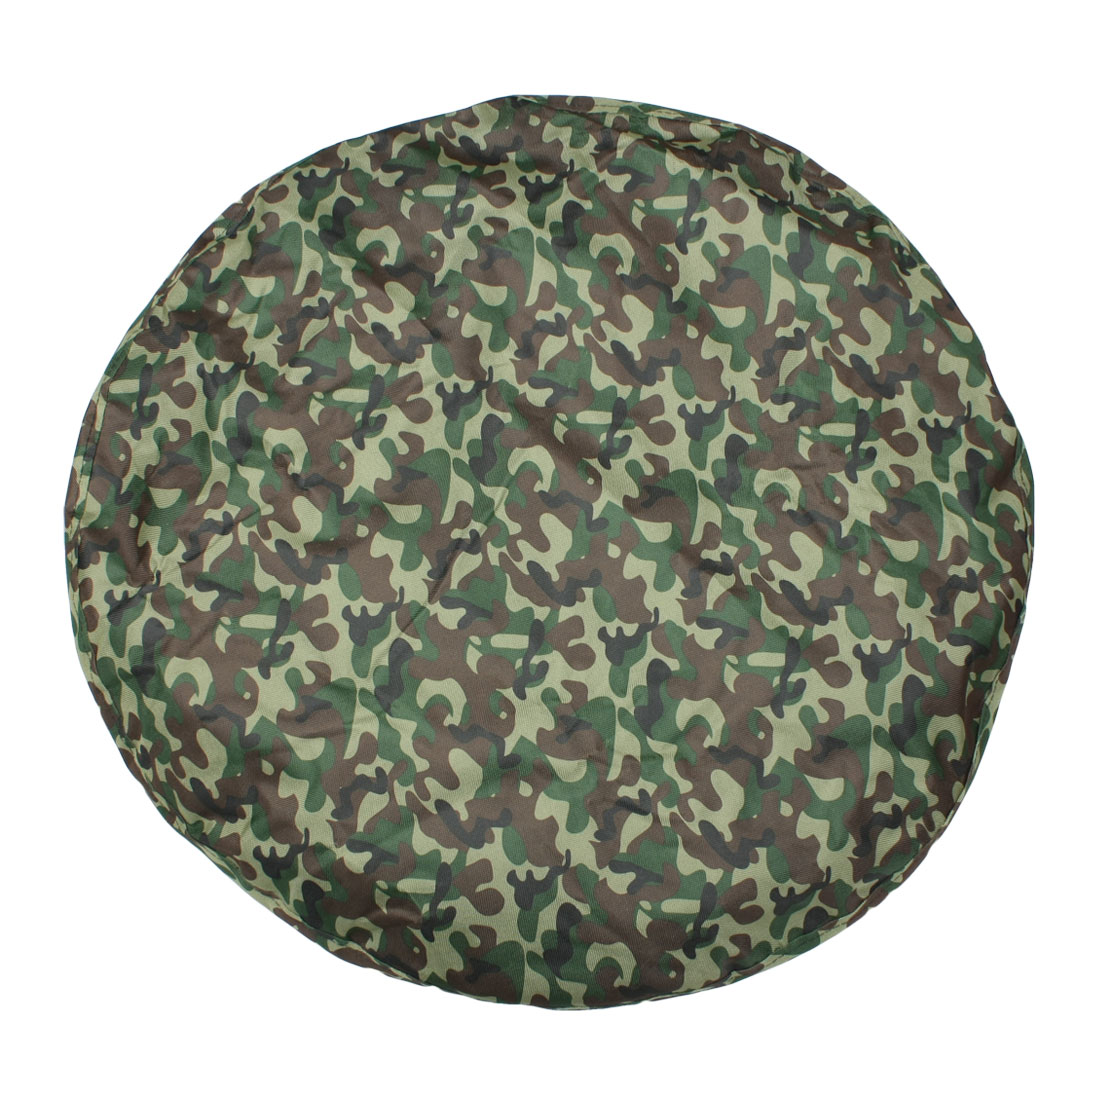 "Nylon Exterior Camouflage Pattern Wheel Spare Tire Cover Protector 27"" Dia"